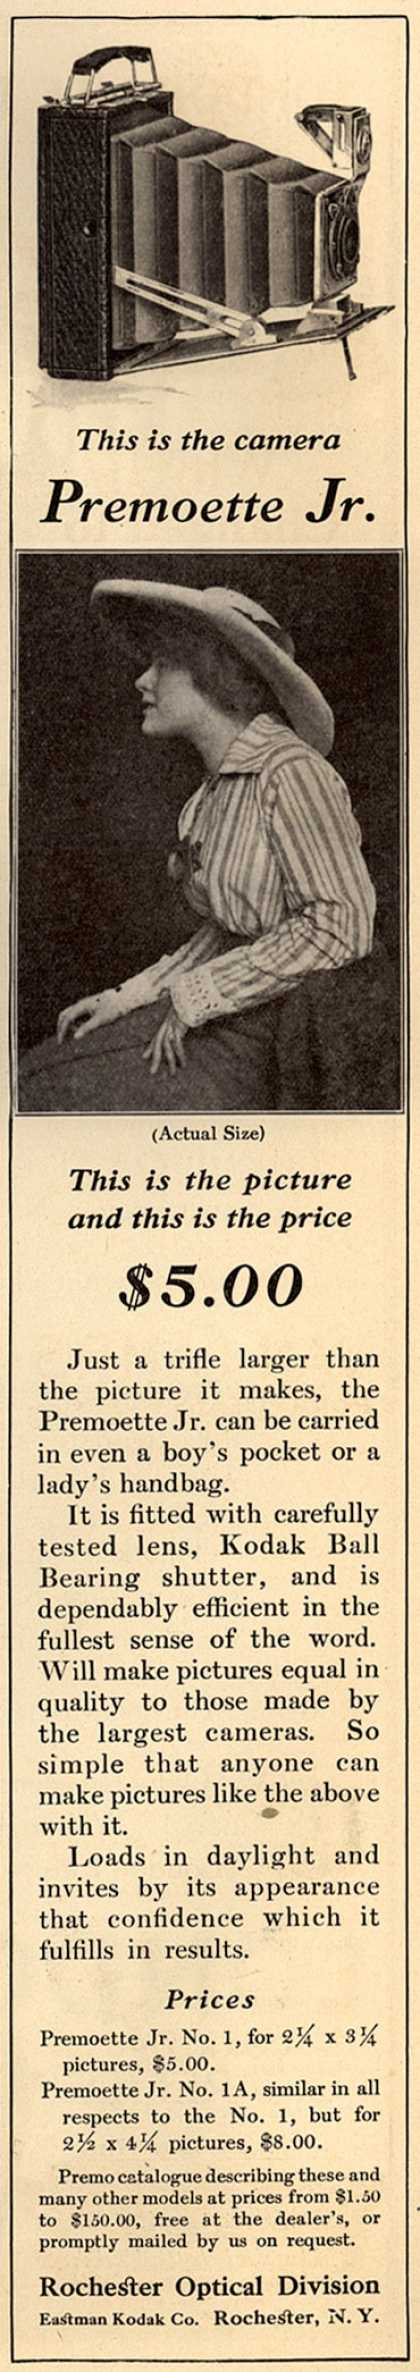 Kodak's Premoette Jr. cameras – This is the camera Premoette Jr. This is the picture and this is the price $5.00 (1915)